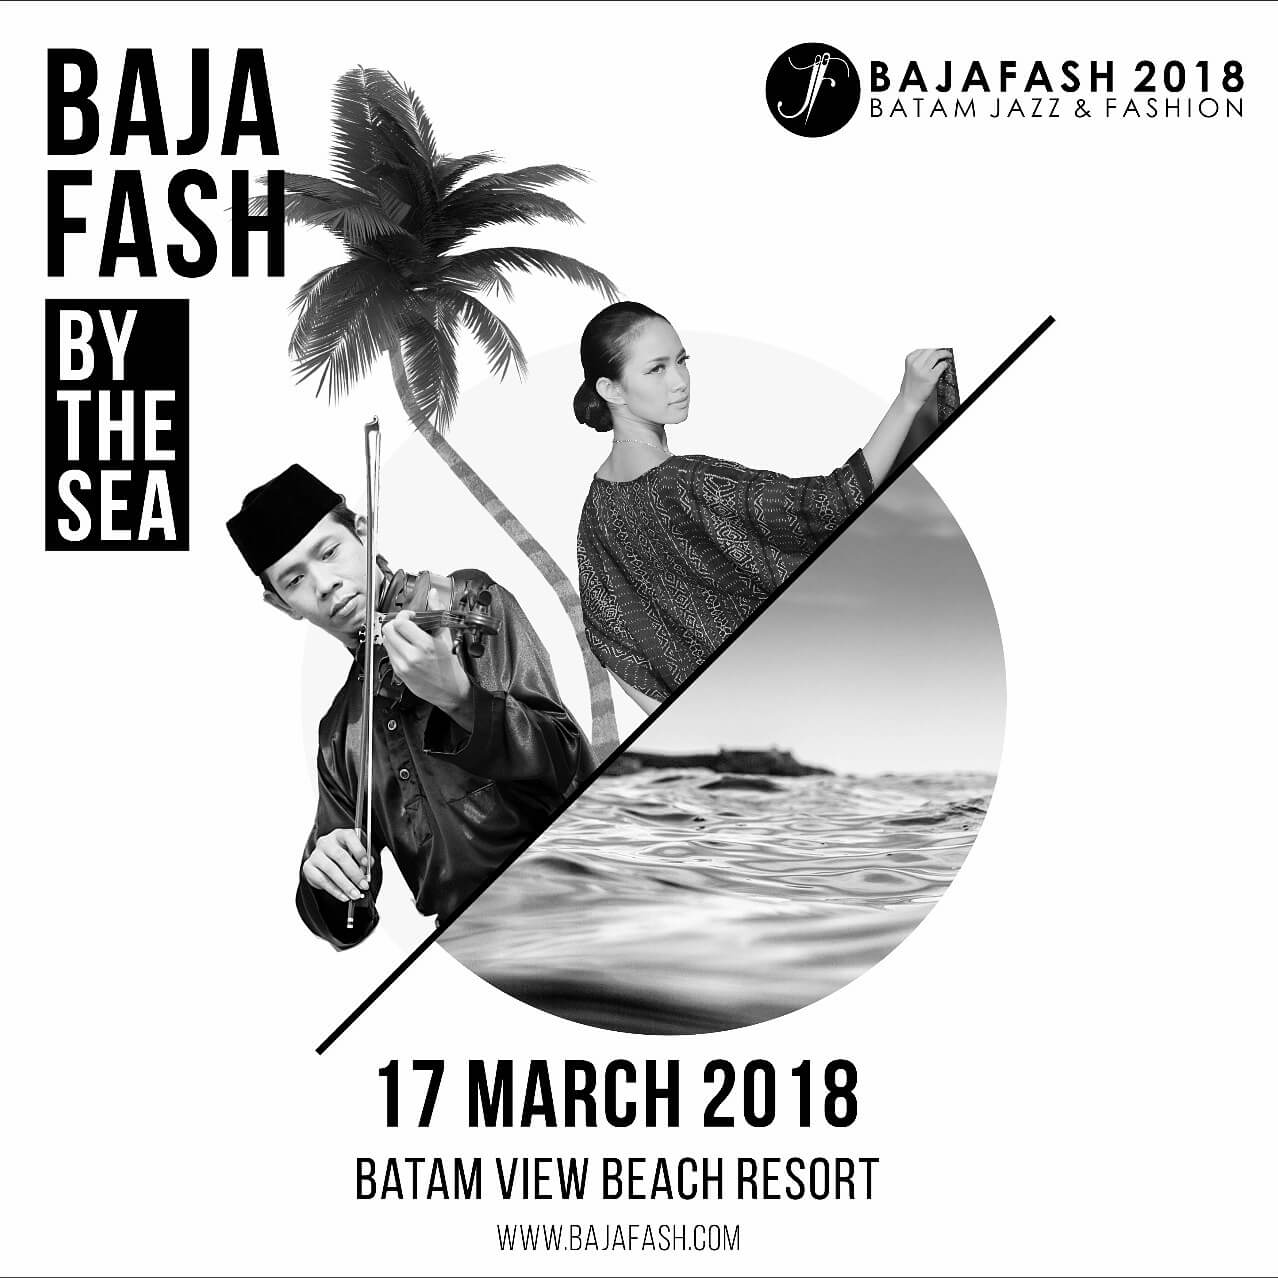 Bajafash 2018 by the Sea